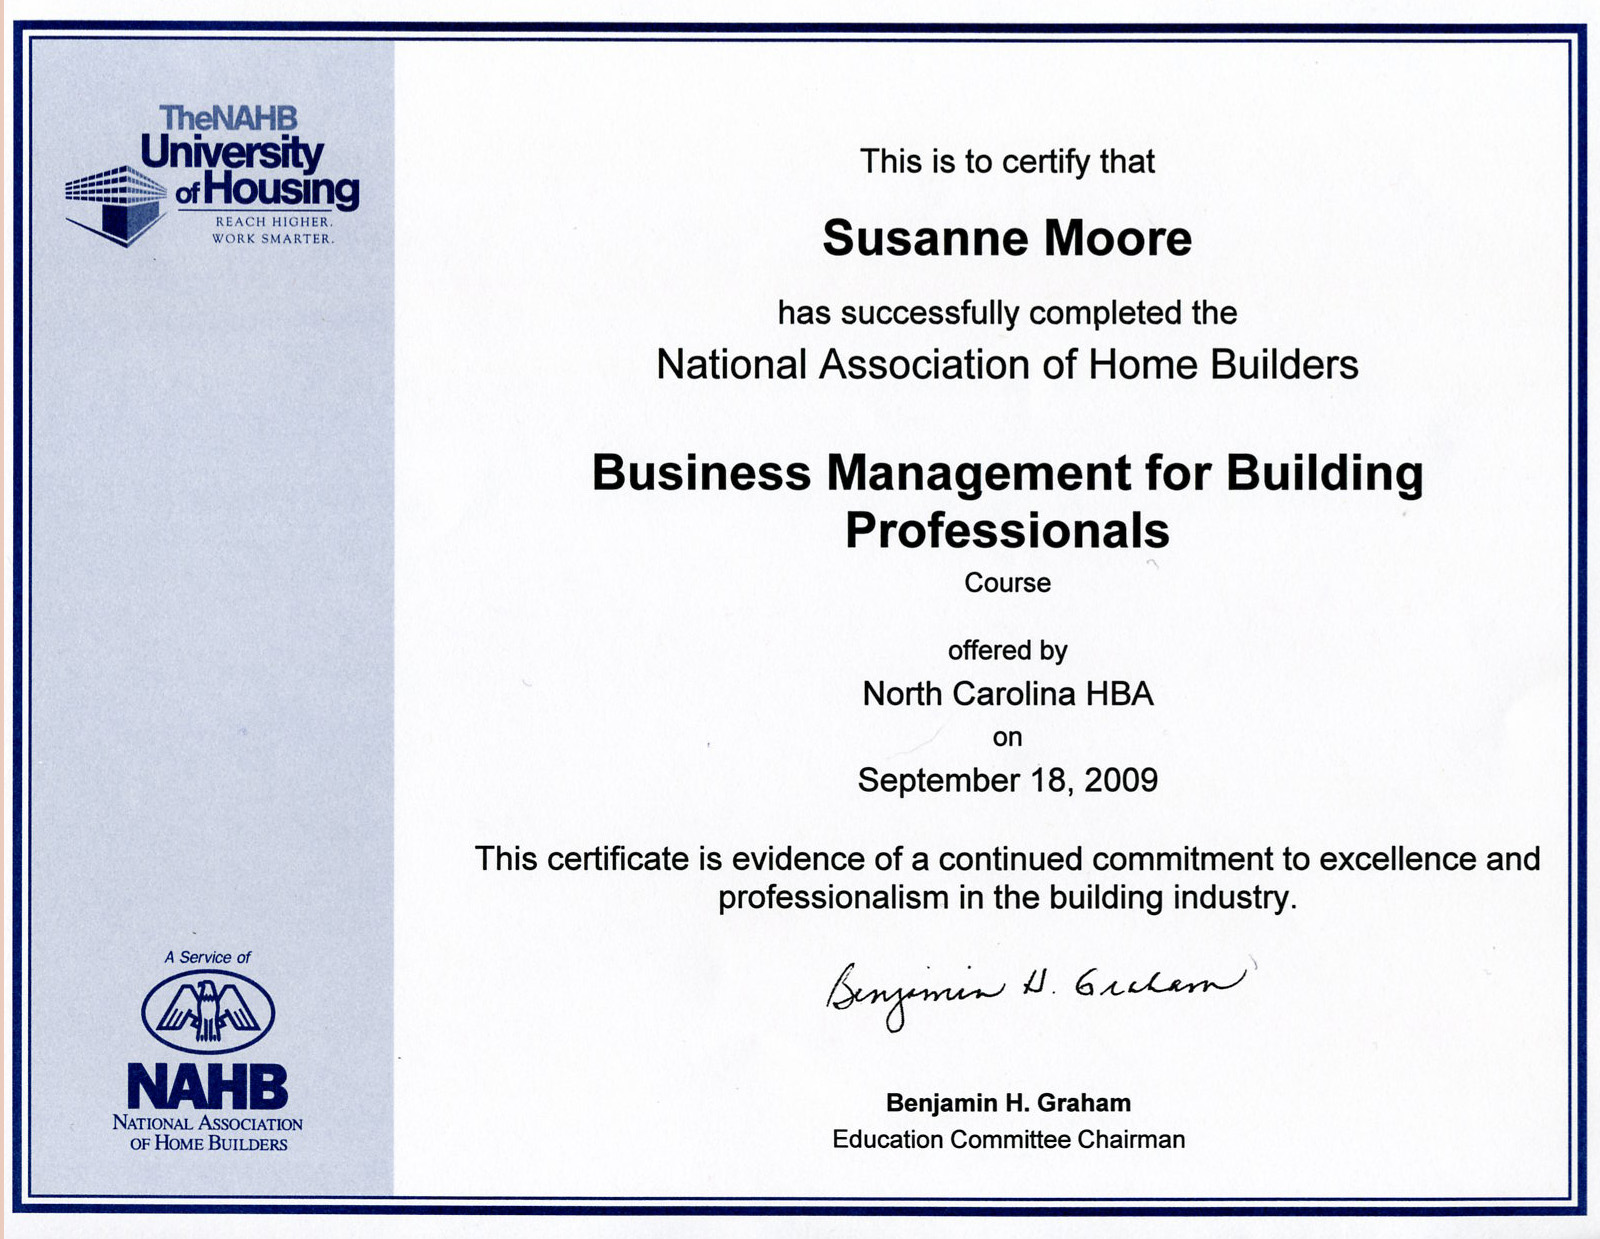 Moore construction services inc custom home builder in the business management for building professional certification xflitez Images